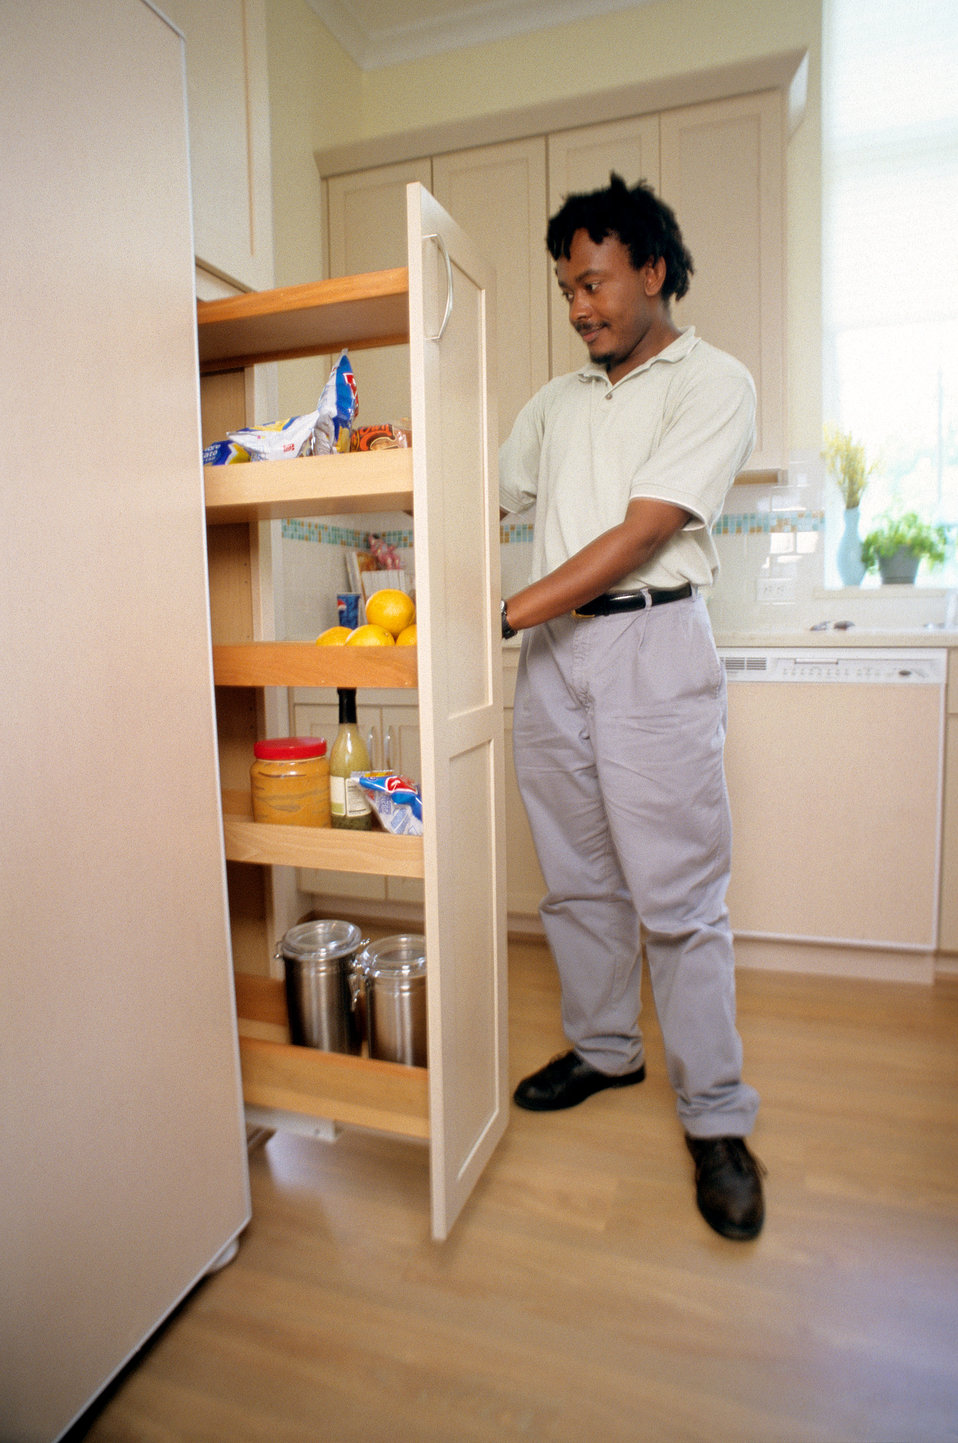 In this 2000 image, an adult man was shown as he was navigating the contents of a kitchen-situated 'pull-out' pantry, in order to illustrate